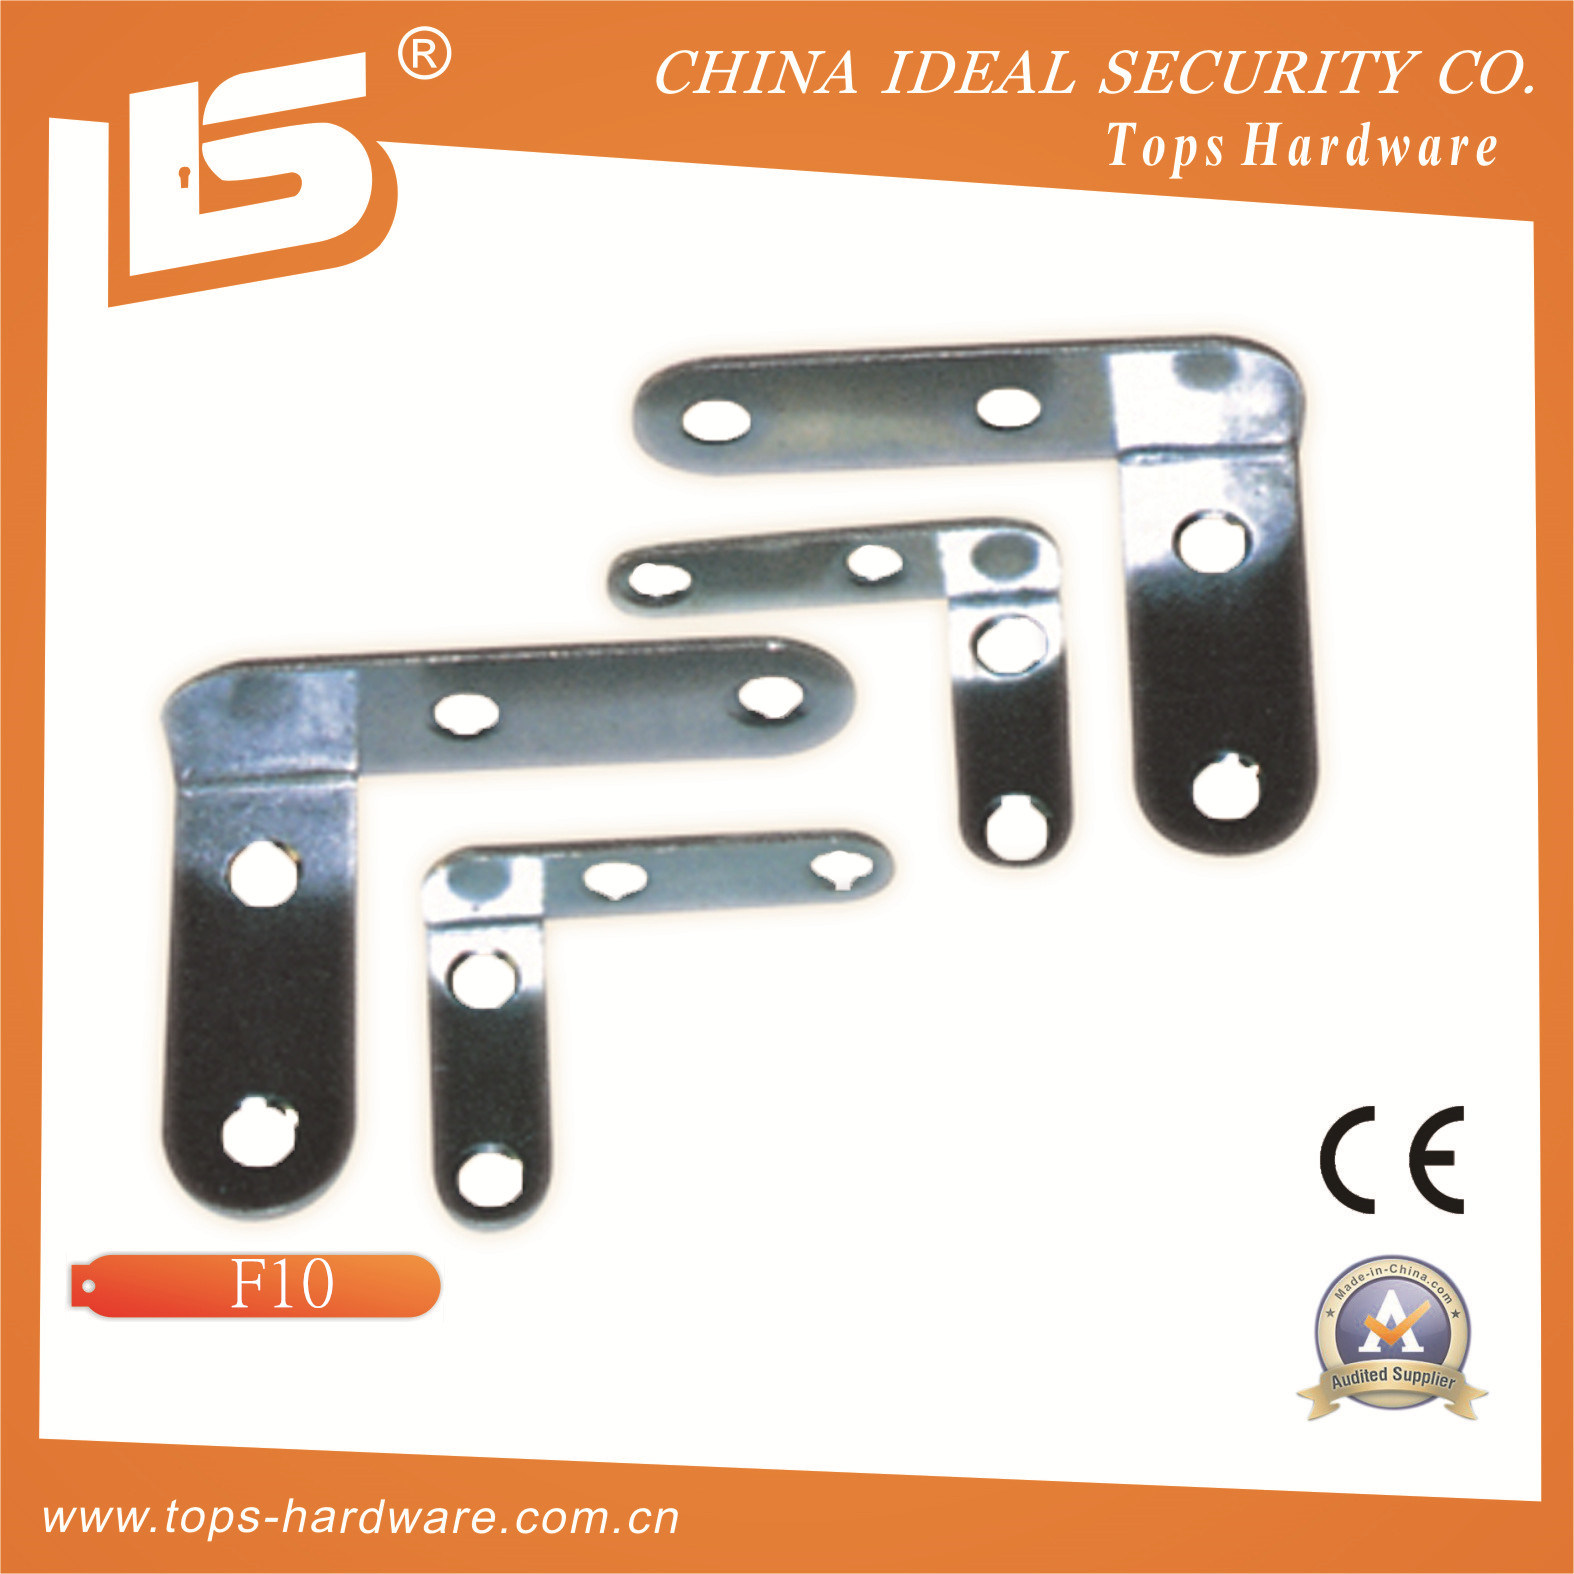 Iron Triangle Brace Shelf Bracket (F10)